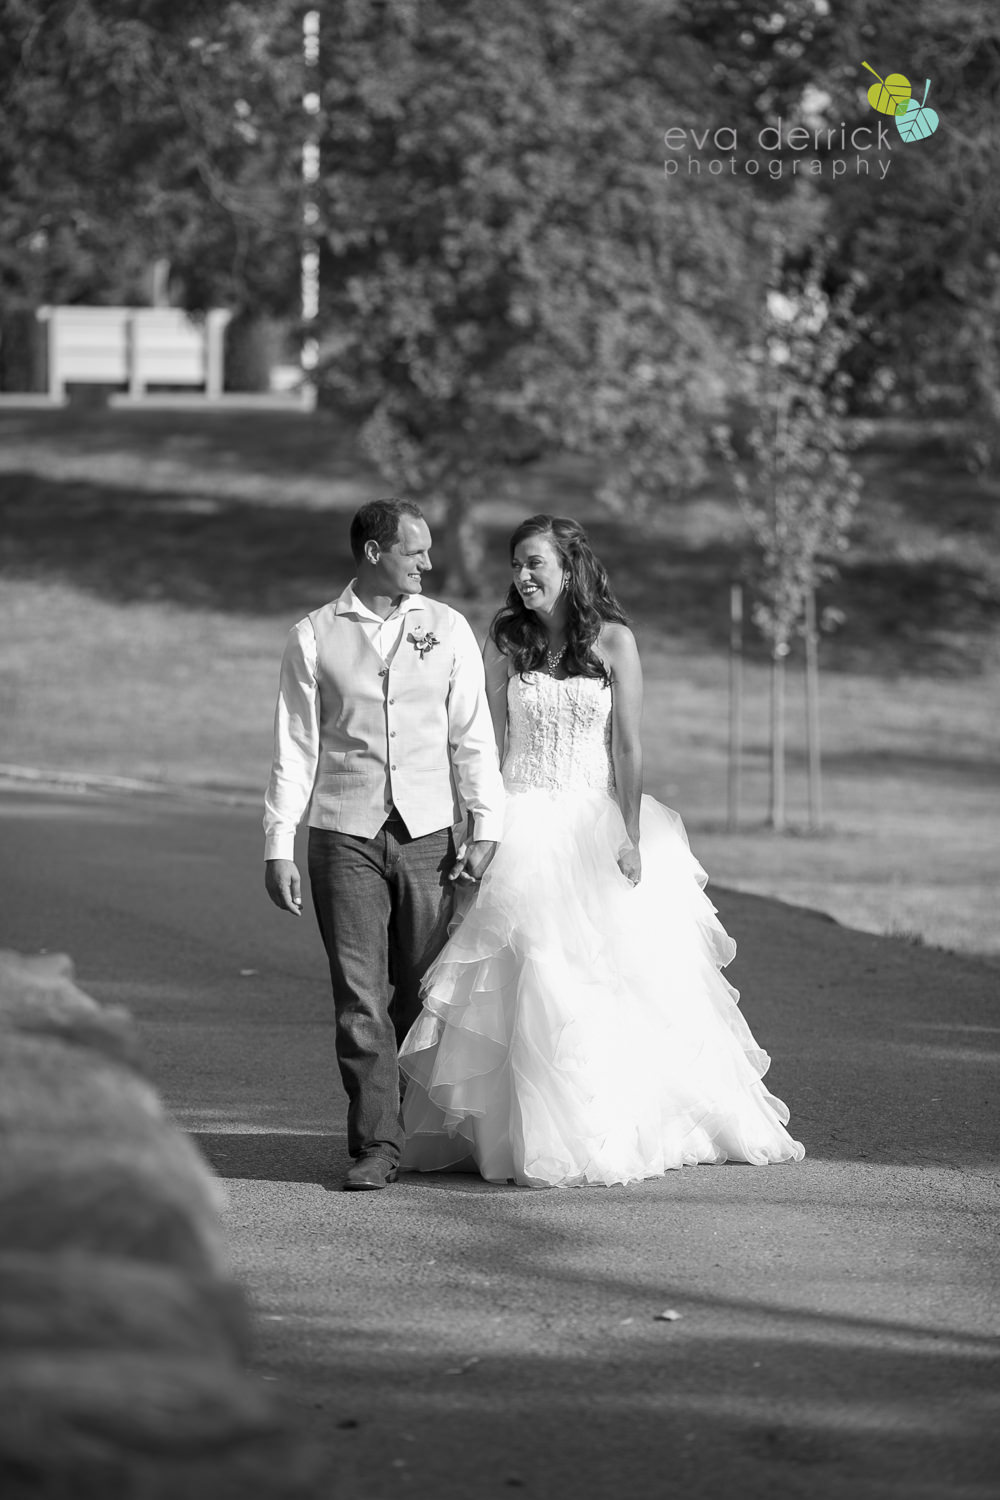 Niagara-Wedding-photographer-outdoor-wedding-photo-by-eva-derrick-photography-025.JPG